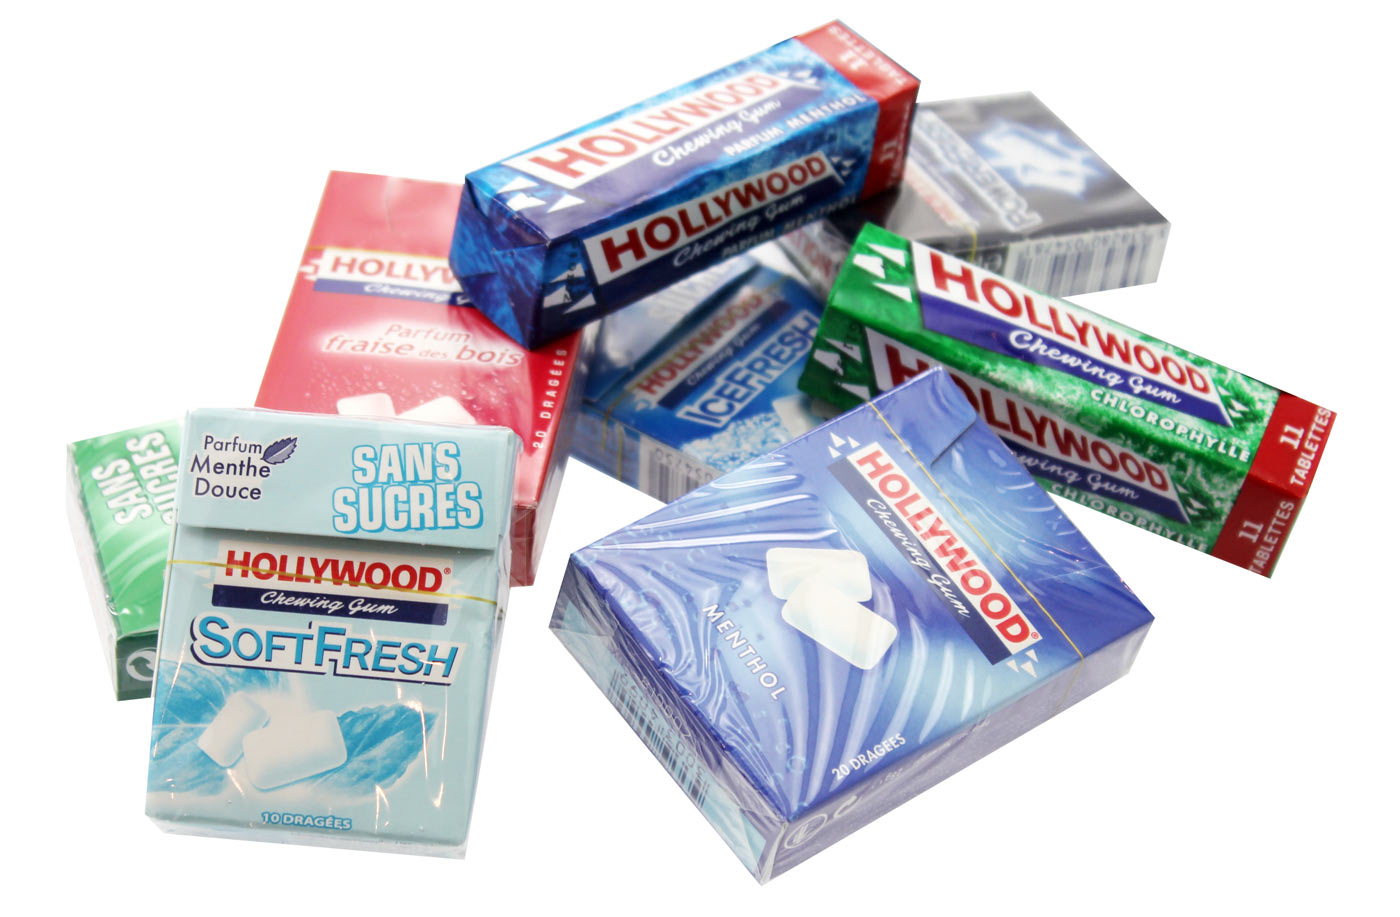 Hollywood Chewing-gums | FRIANDIZ.COM | Friandises, Bonbons, Chocolats ...